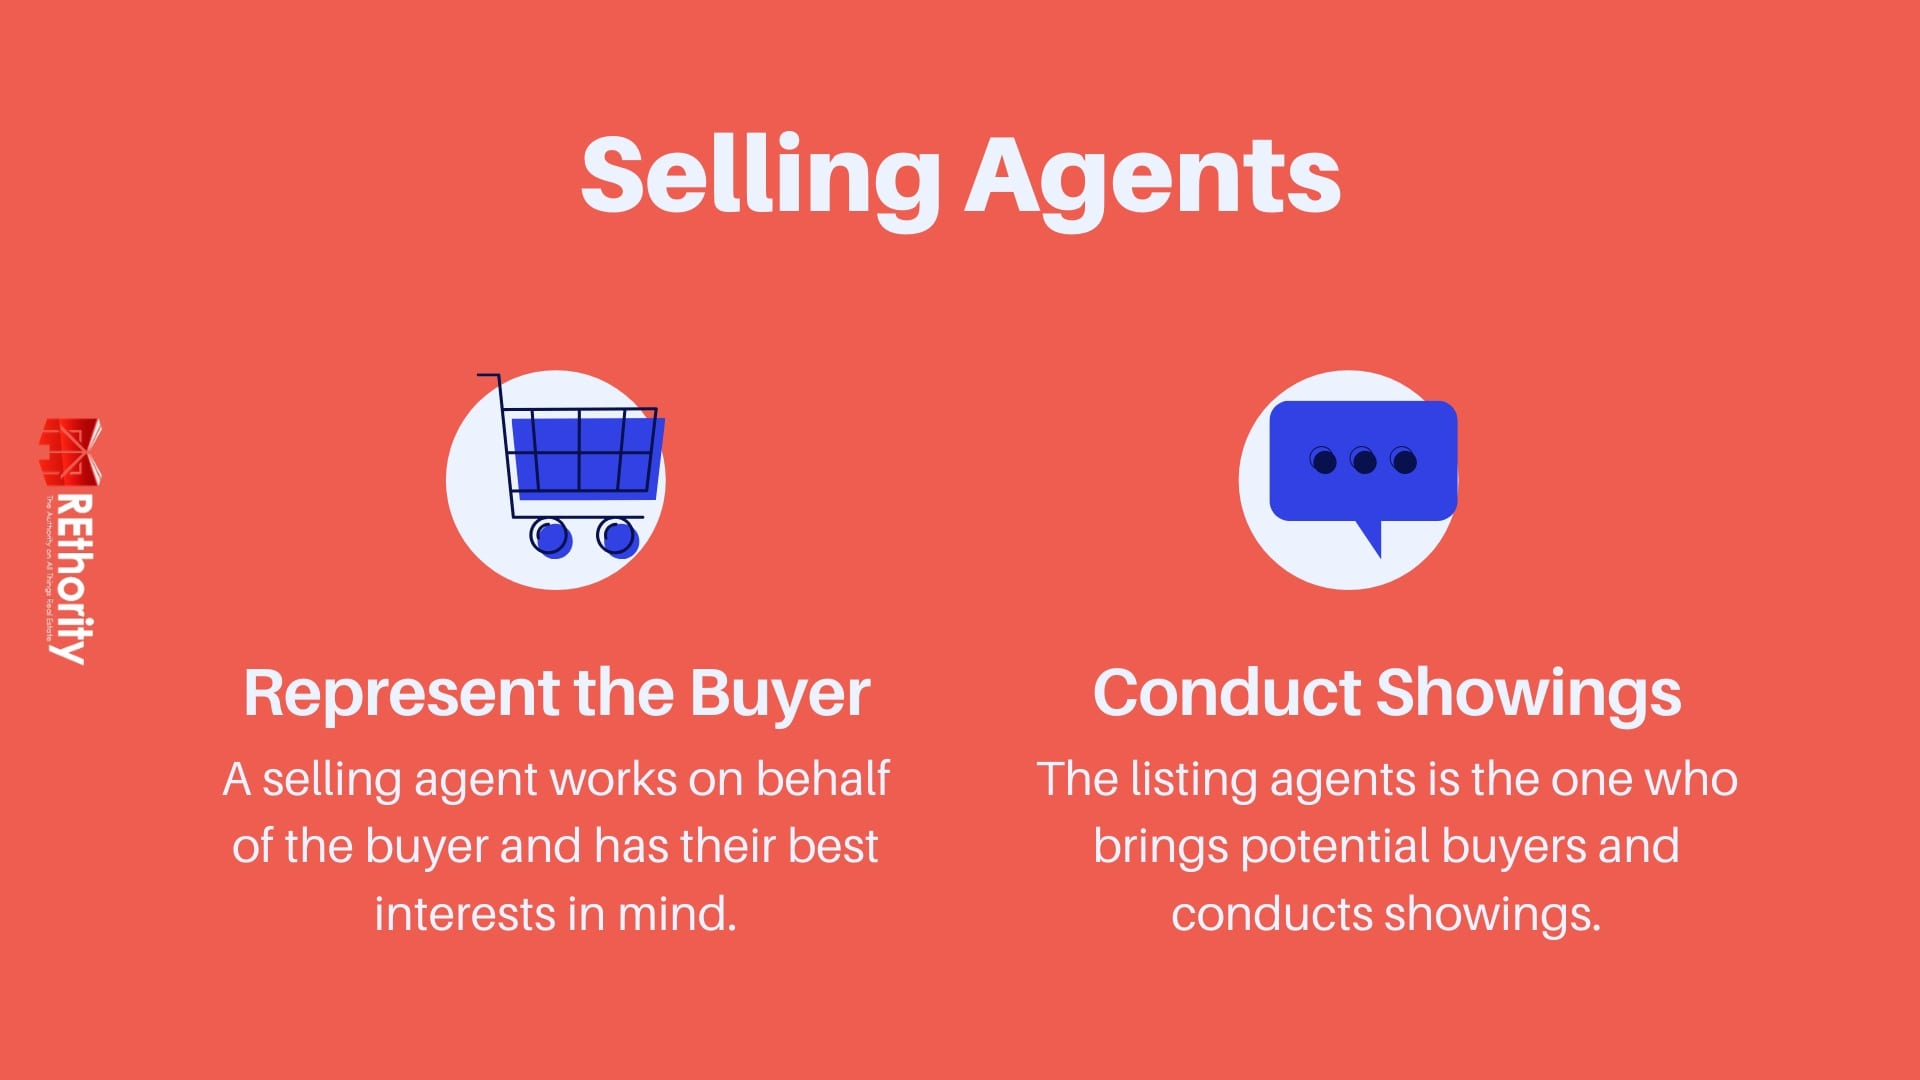 Graphic explaining what a selling agent does including the duties they perform on behalf of their clients, the buyer